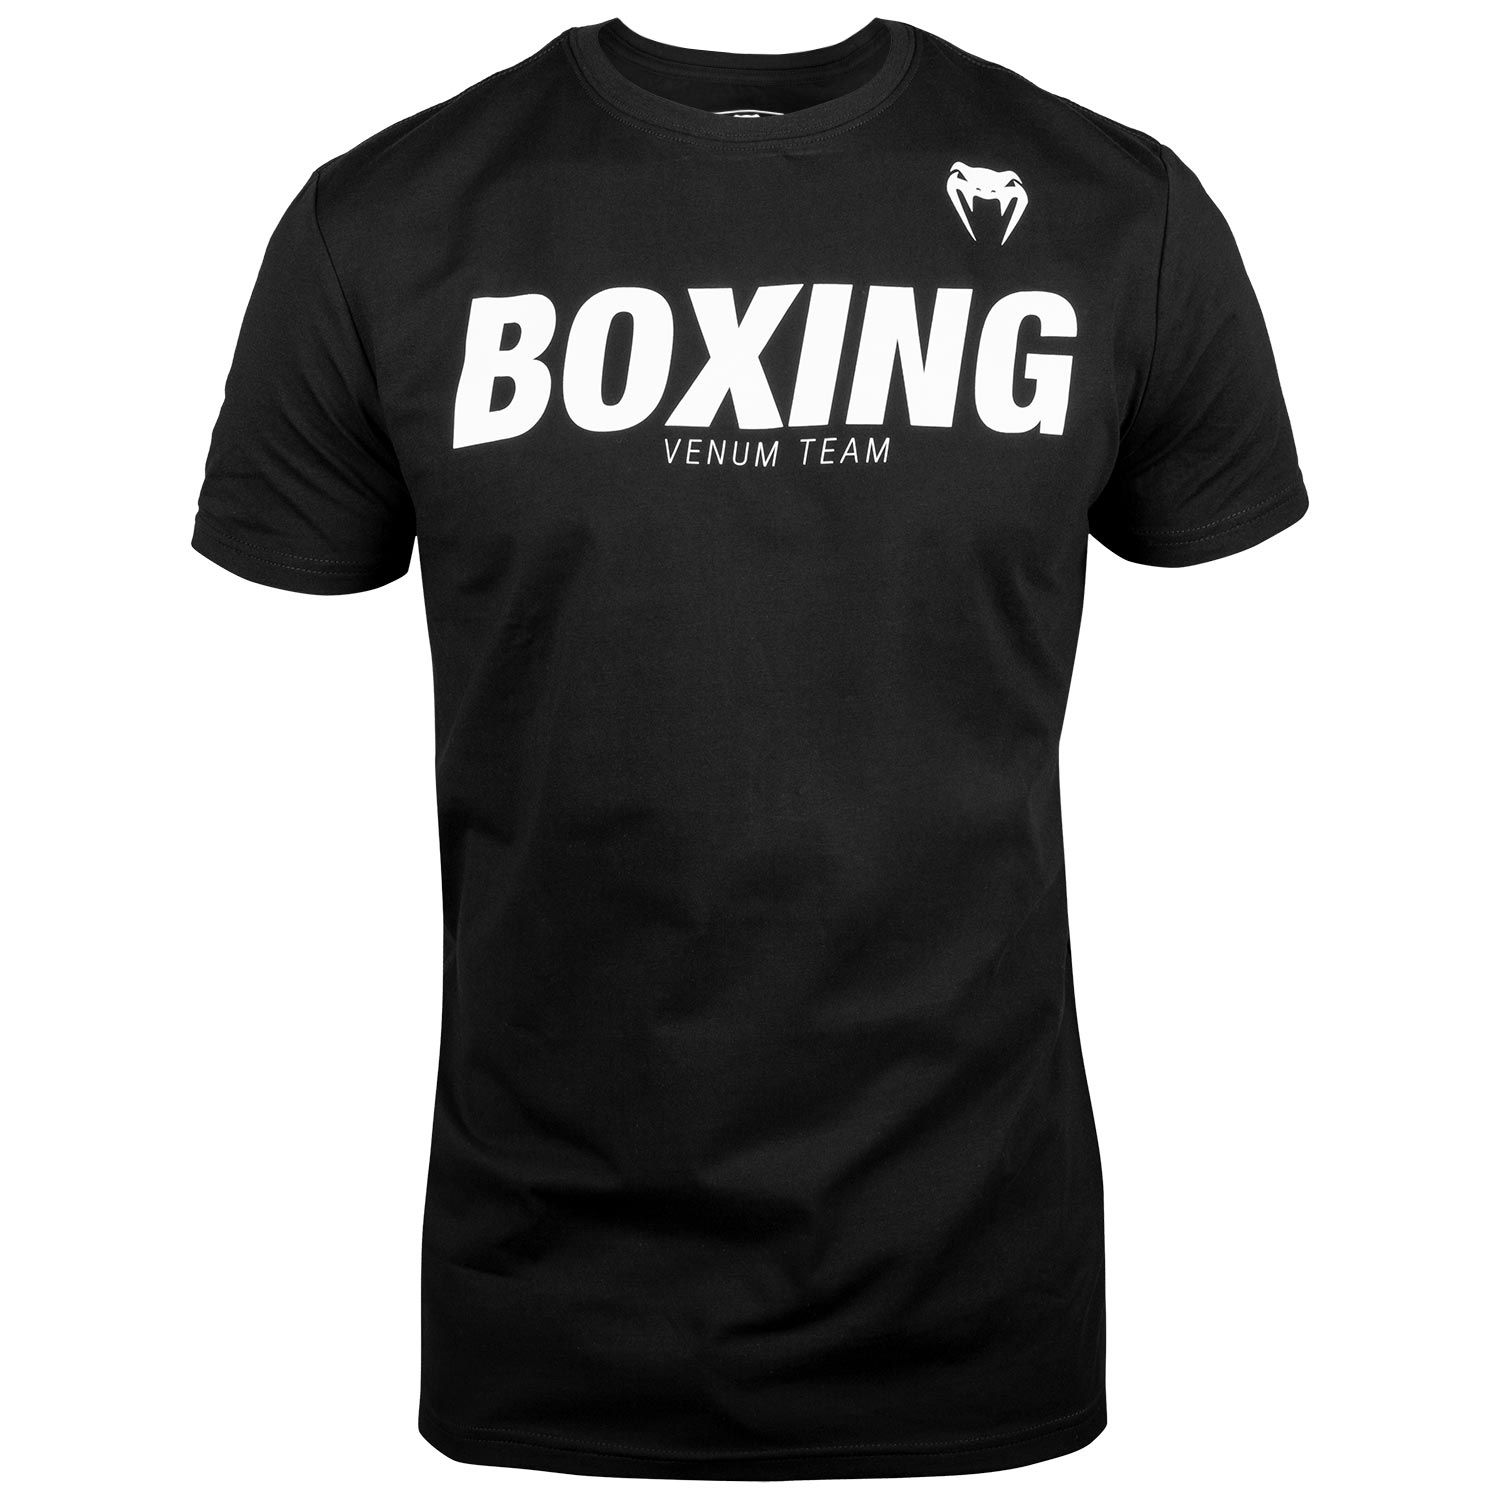 Venum boxing shirt